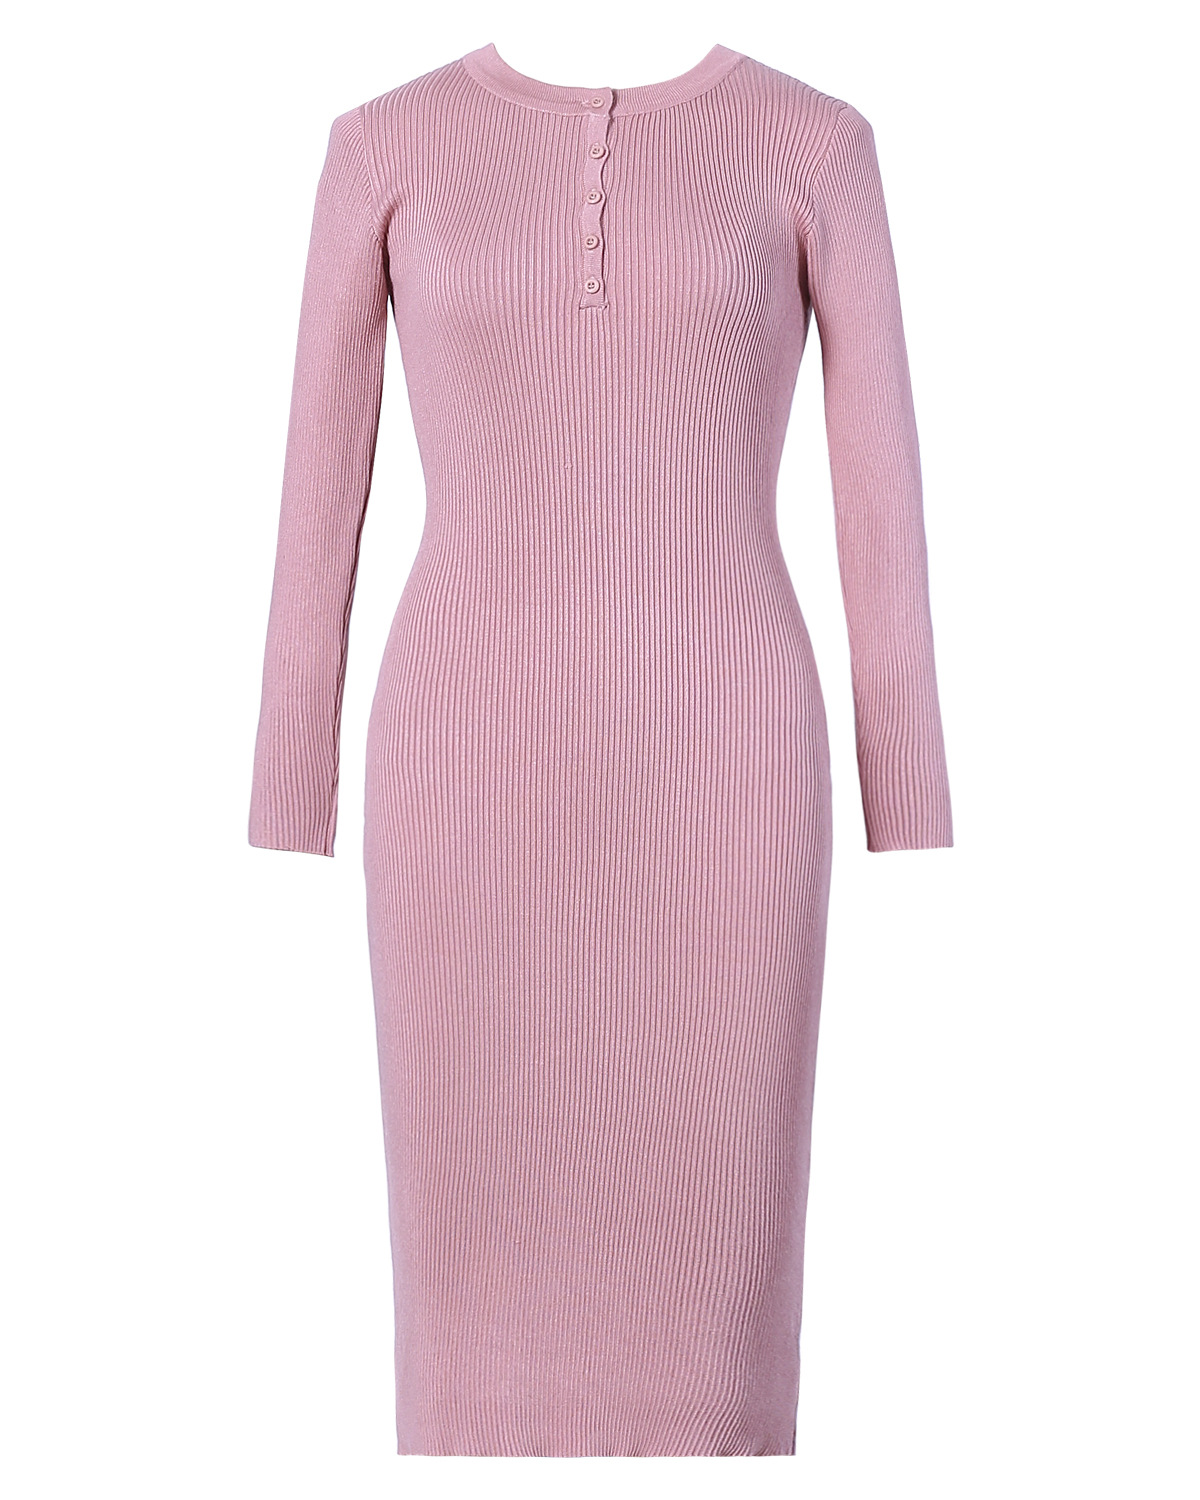 Sweater Dress For Woman Buttons Long Sleeve Knitted Wear Clothes 2018 Knee Length Spring 2018 WS5354U